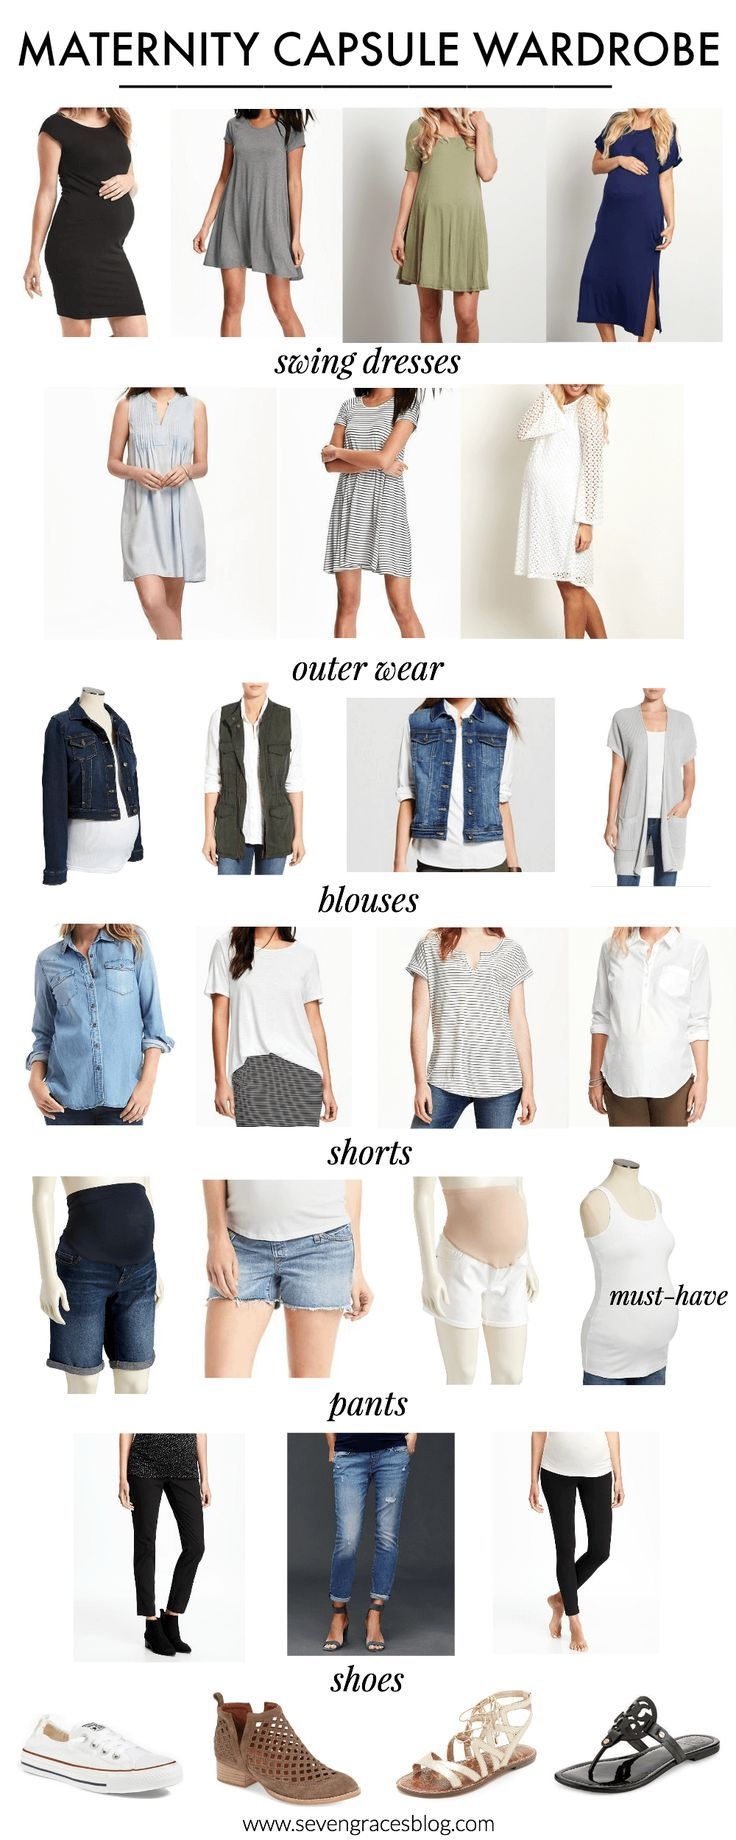 The ultimate maternity capsule wardrobe! This maternity capsule wardrobe walks the expectant mama through what she'll need to wear to create countless outfits for almost any season. Timeless pieces that will take you from the first trimester to postpartum days. This makes dressing the baby bump so easy. These pieces are the only you'll need!